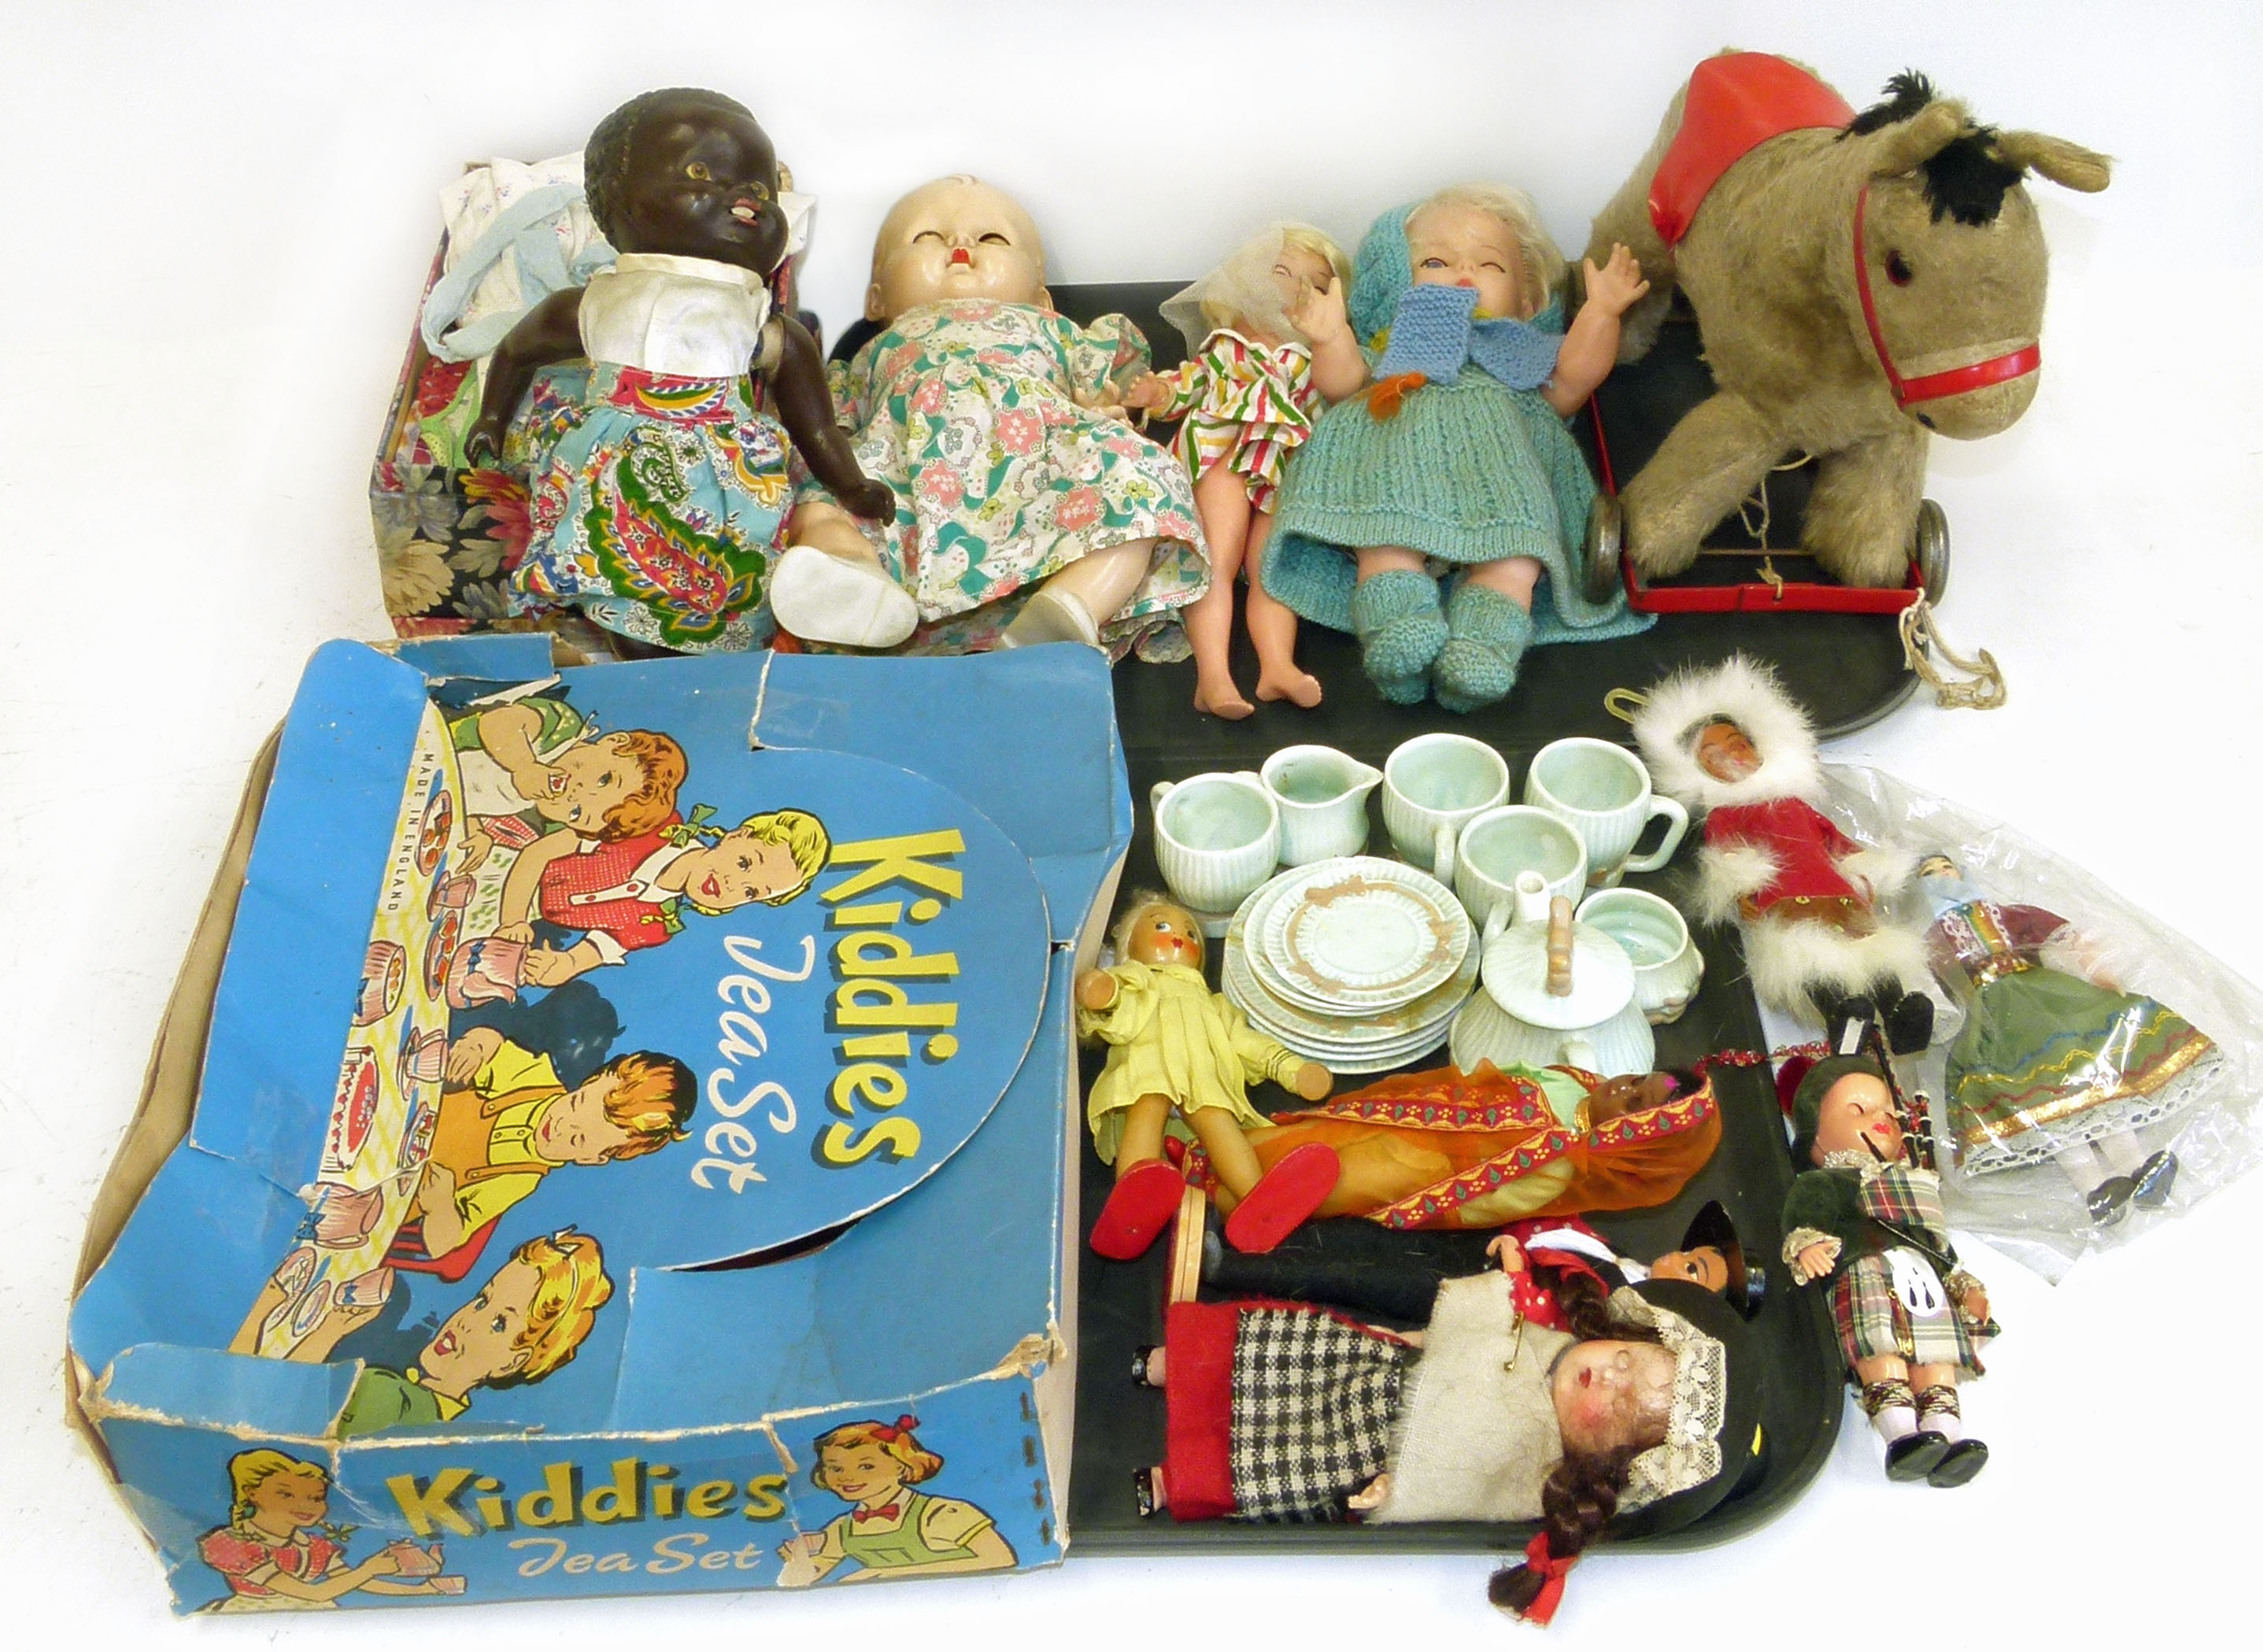 Lot 96 - 15 piece dolls house set complete with box, Rosebud, Pedigree and two other dolls, 7 smaller dolls